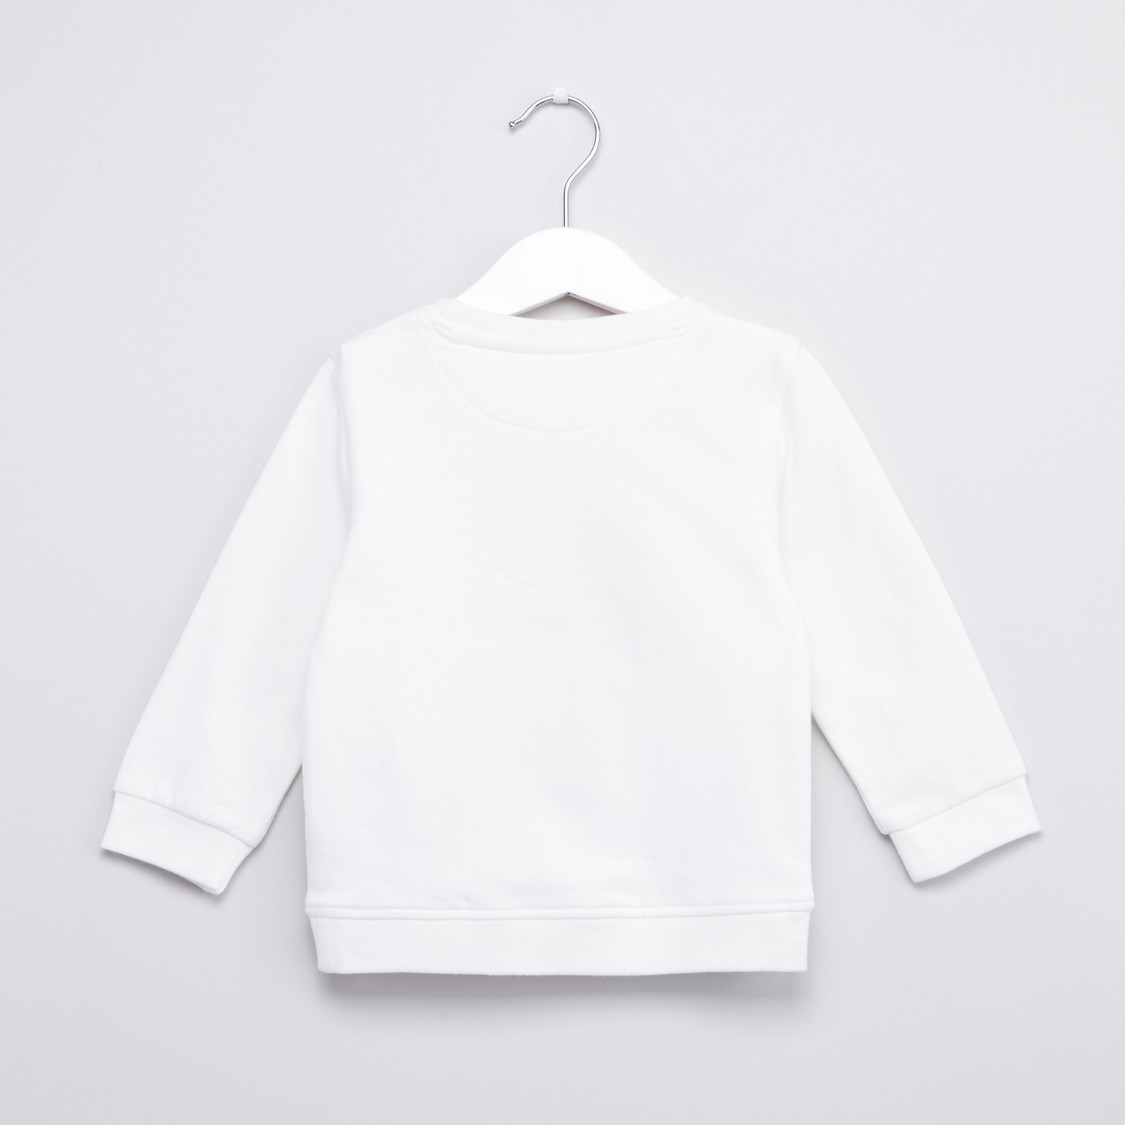 Embroidered Sweatshirt with Round Neck and Long Sleeves